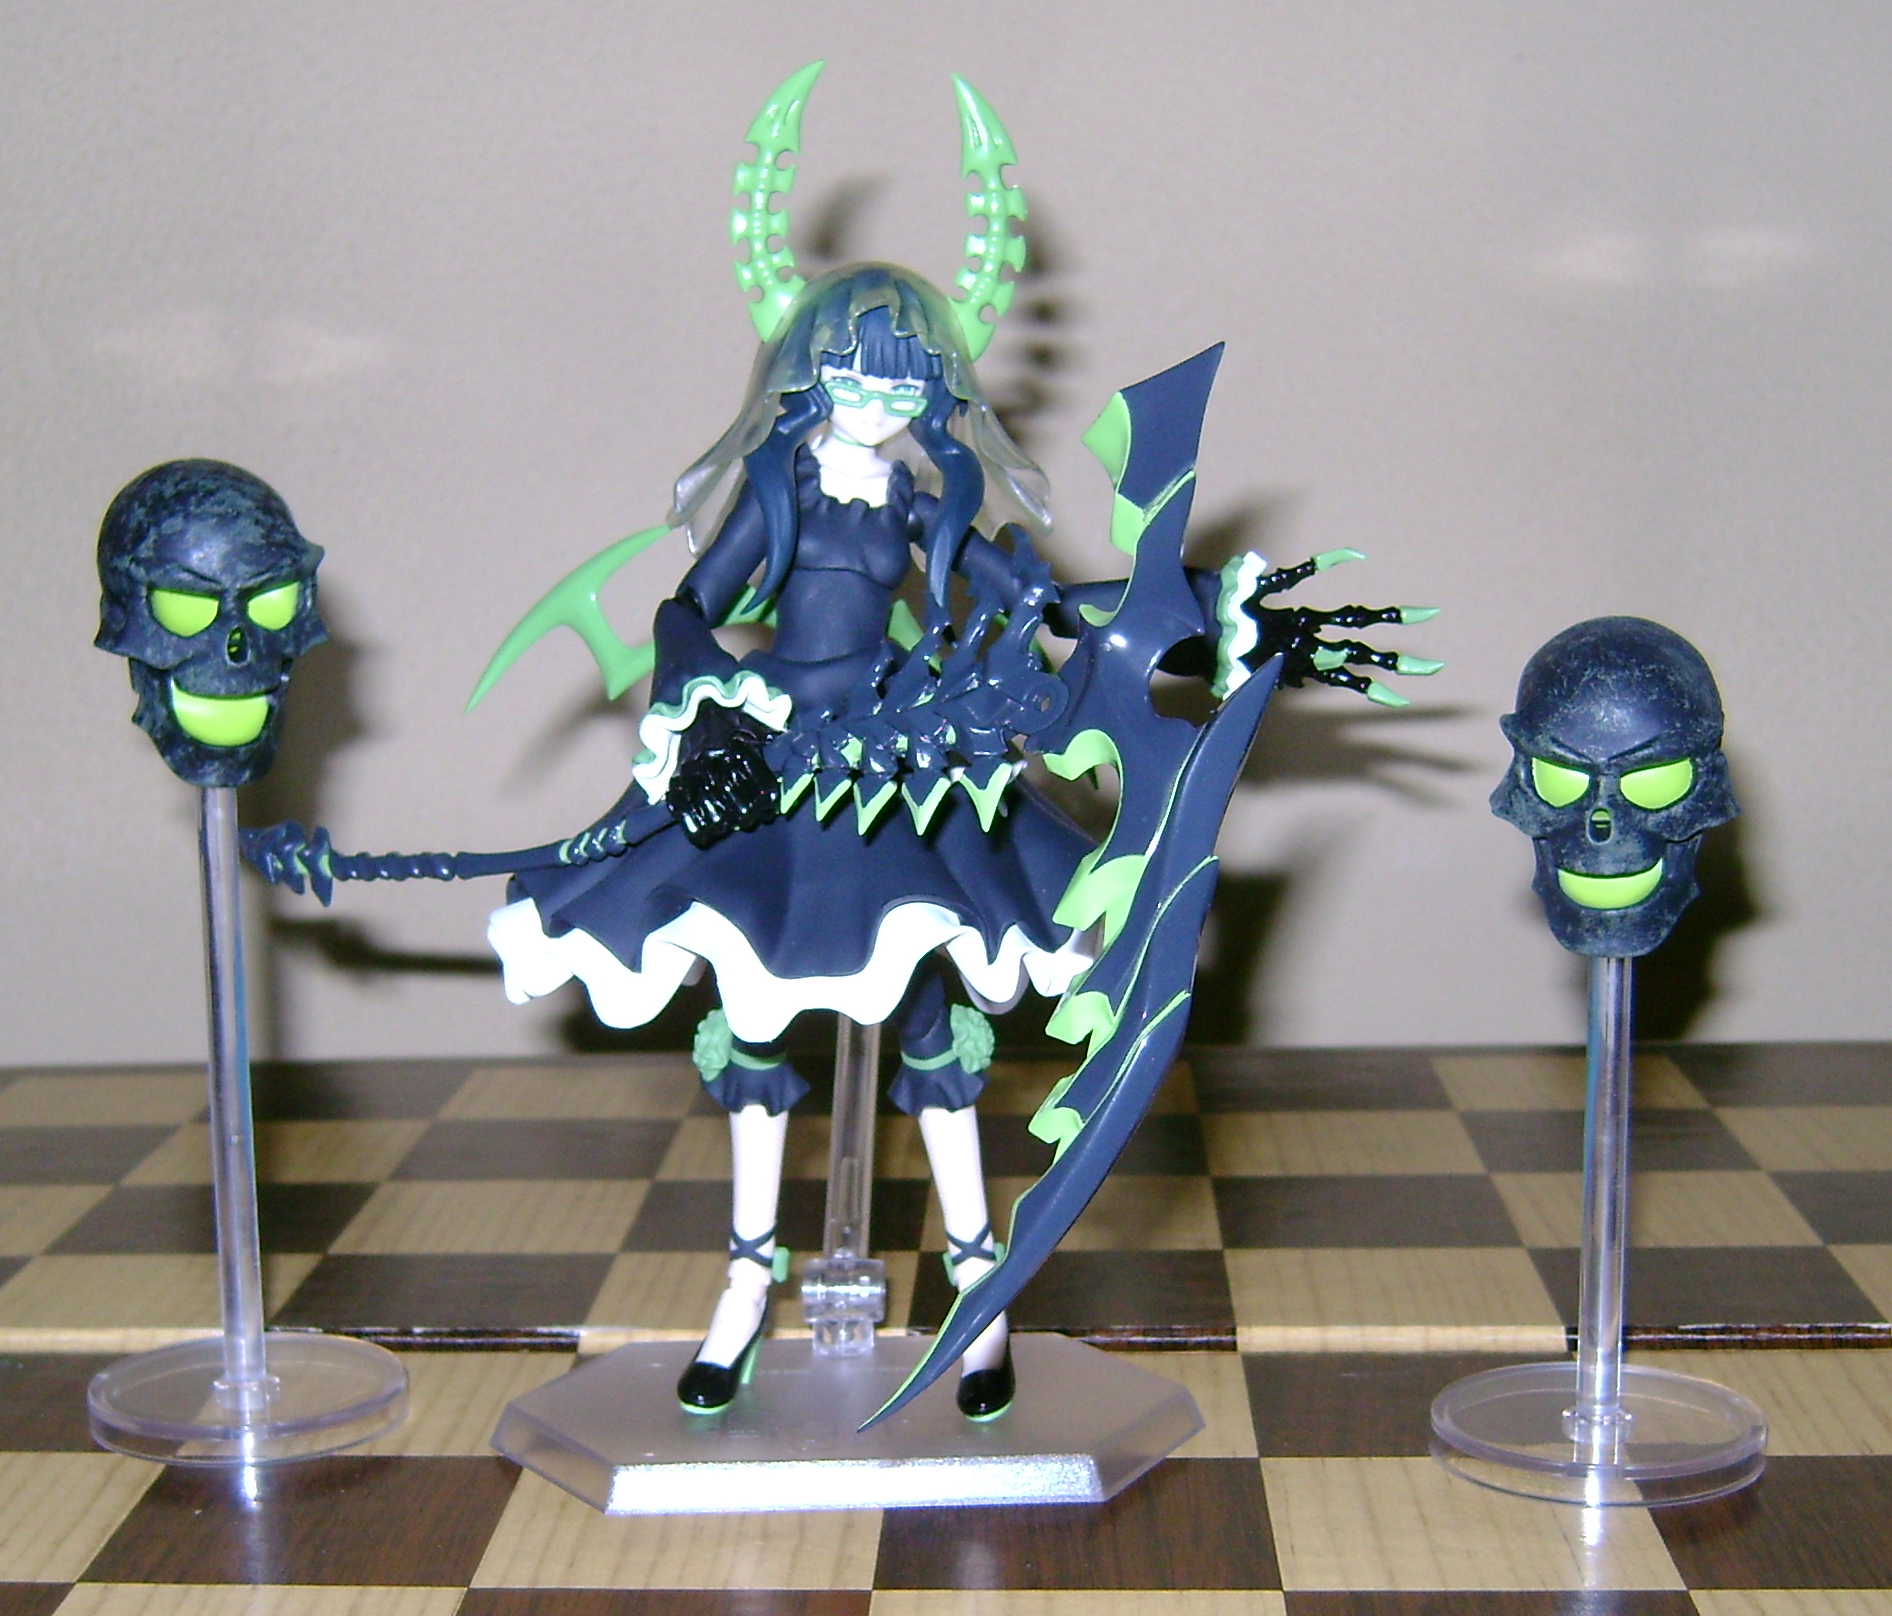 DMTV 5 Figma Fanatic: Dead Master, BRS TV Animation Version!